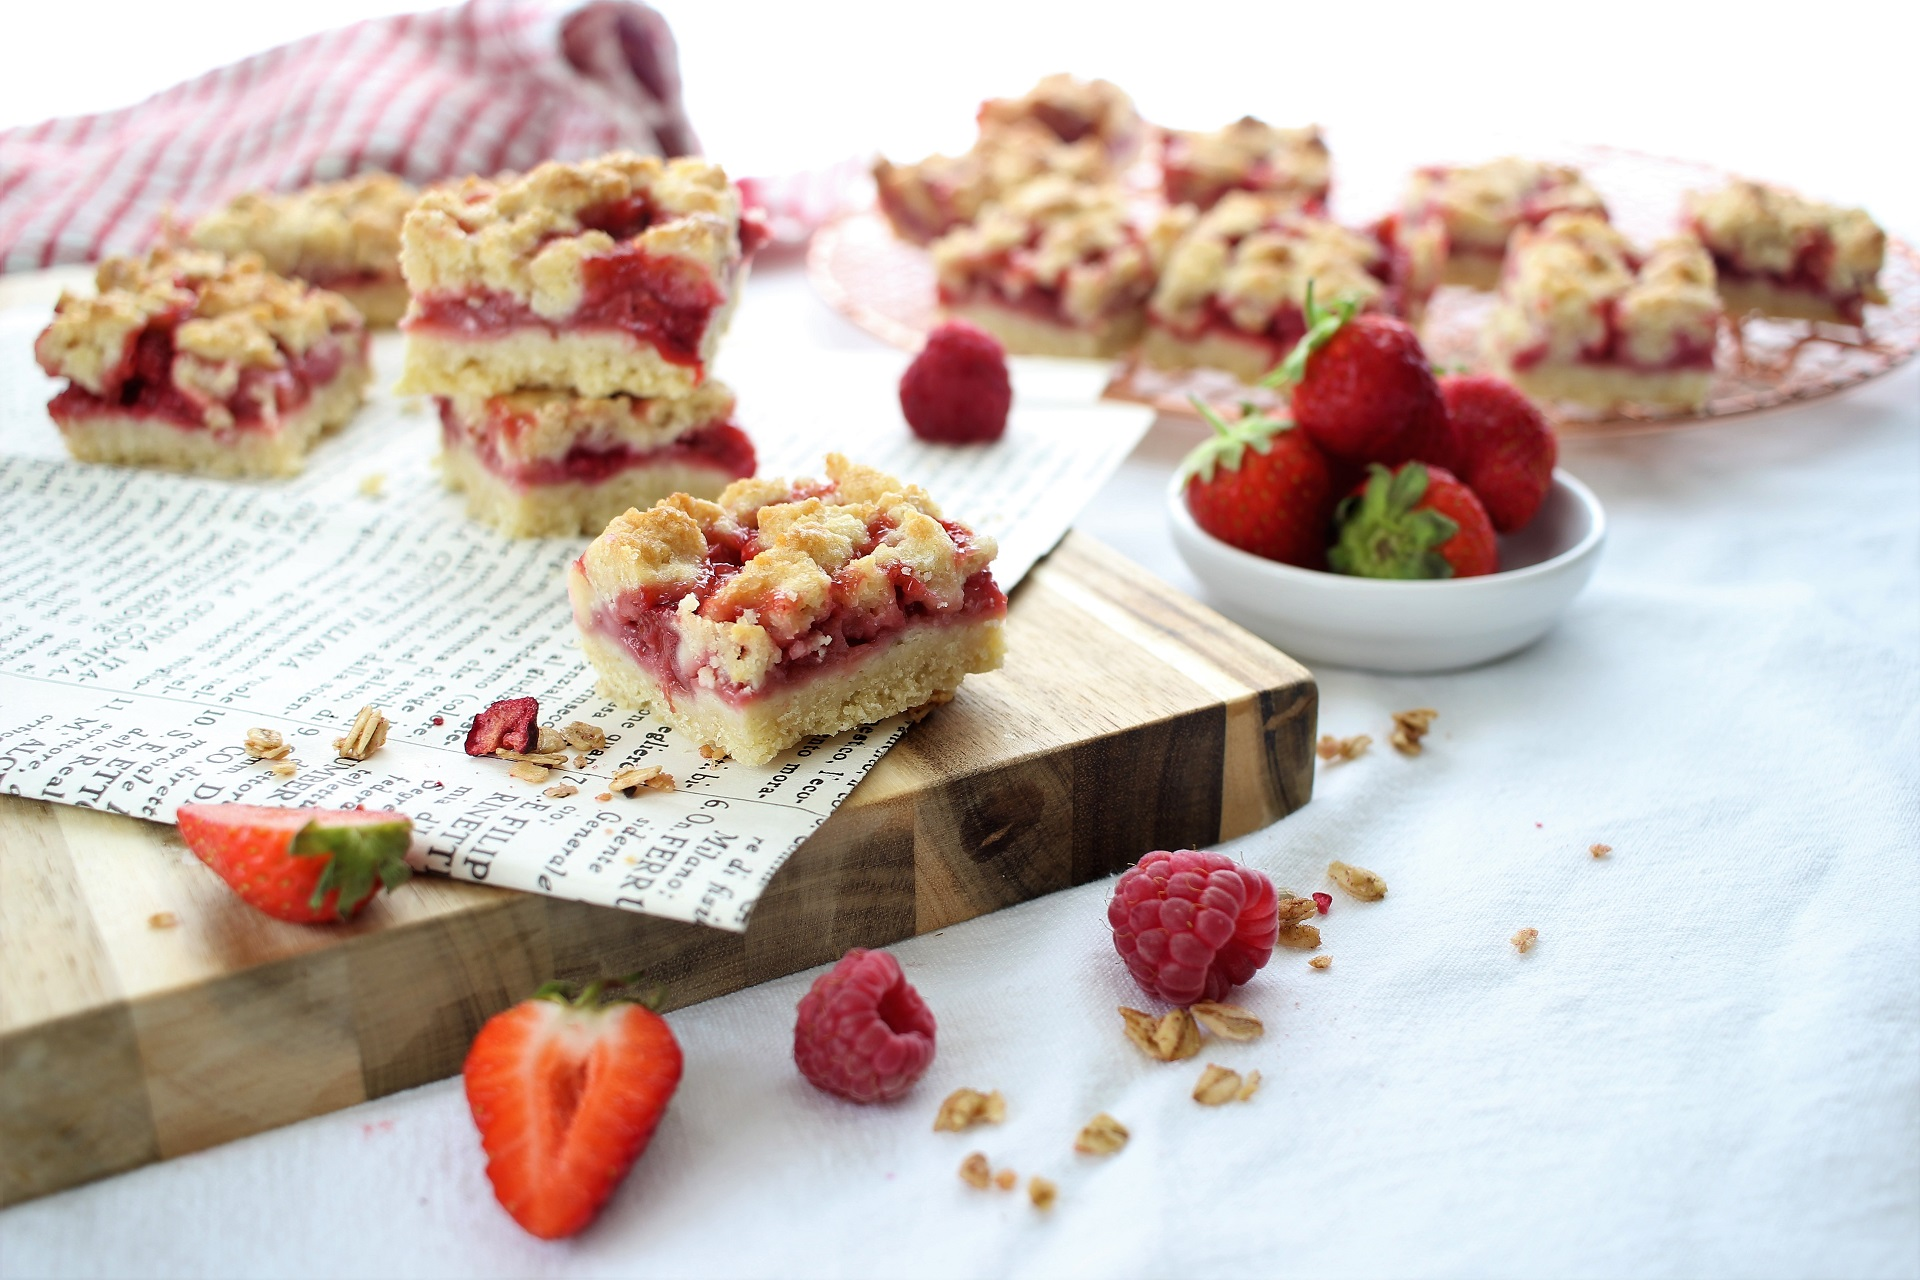 Strawberry and raspberry crumble bars